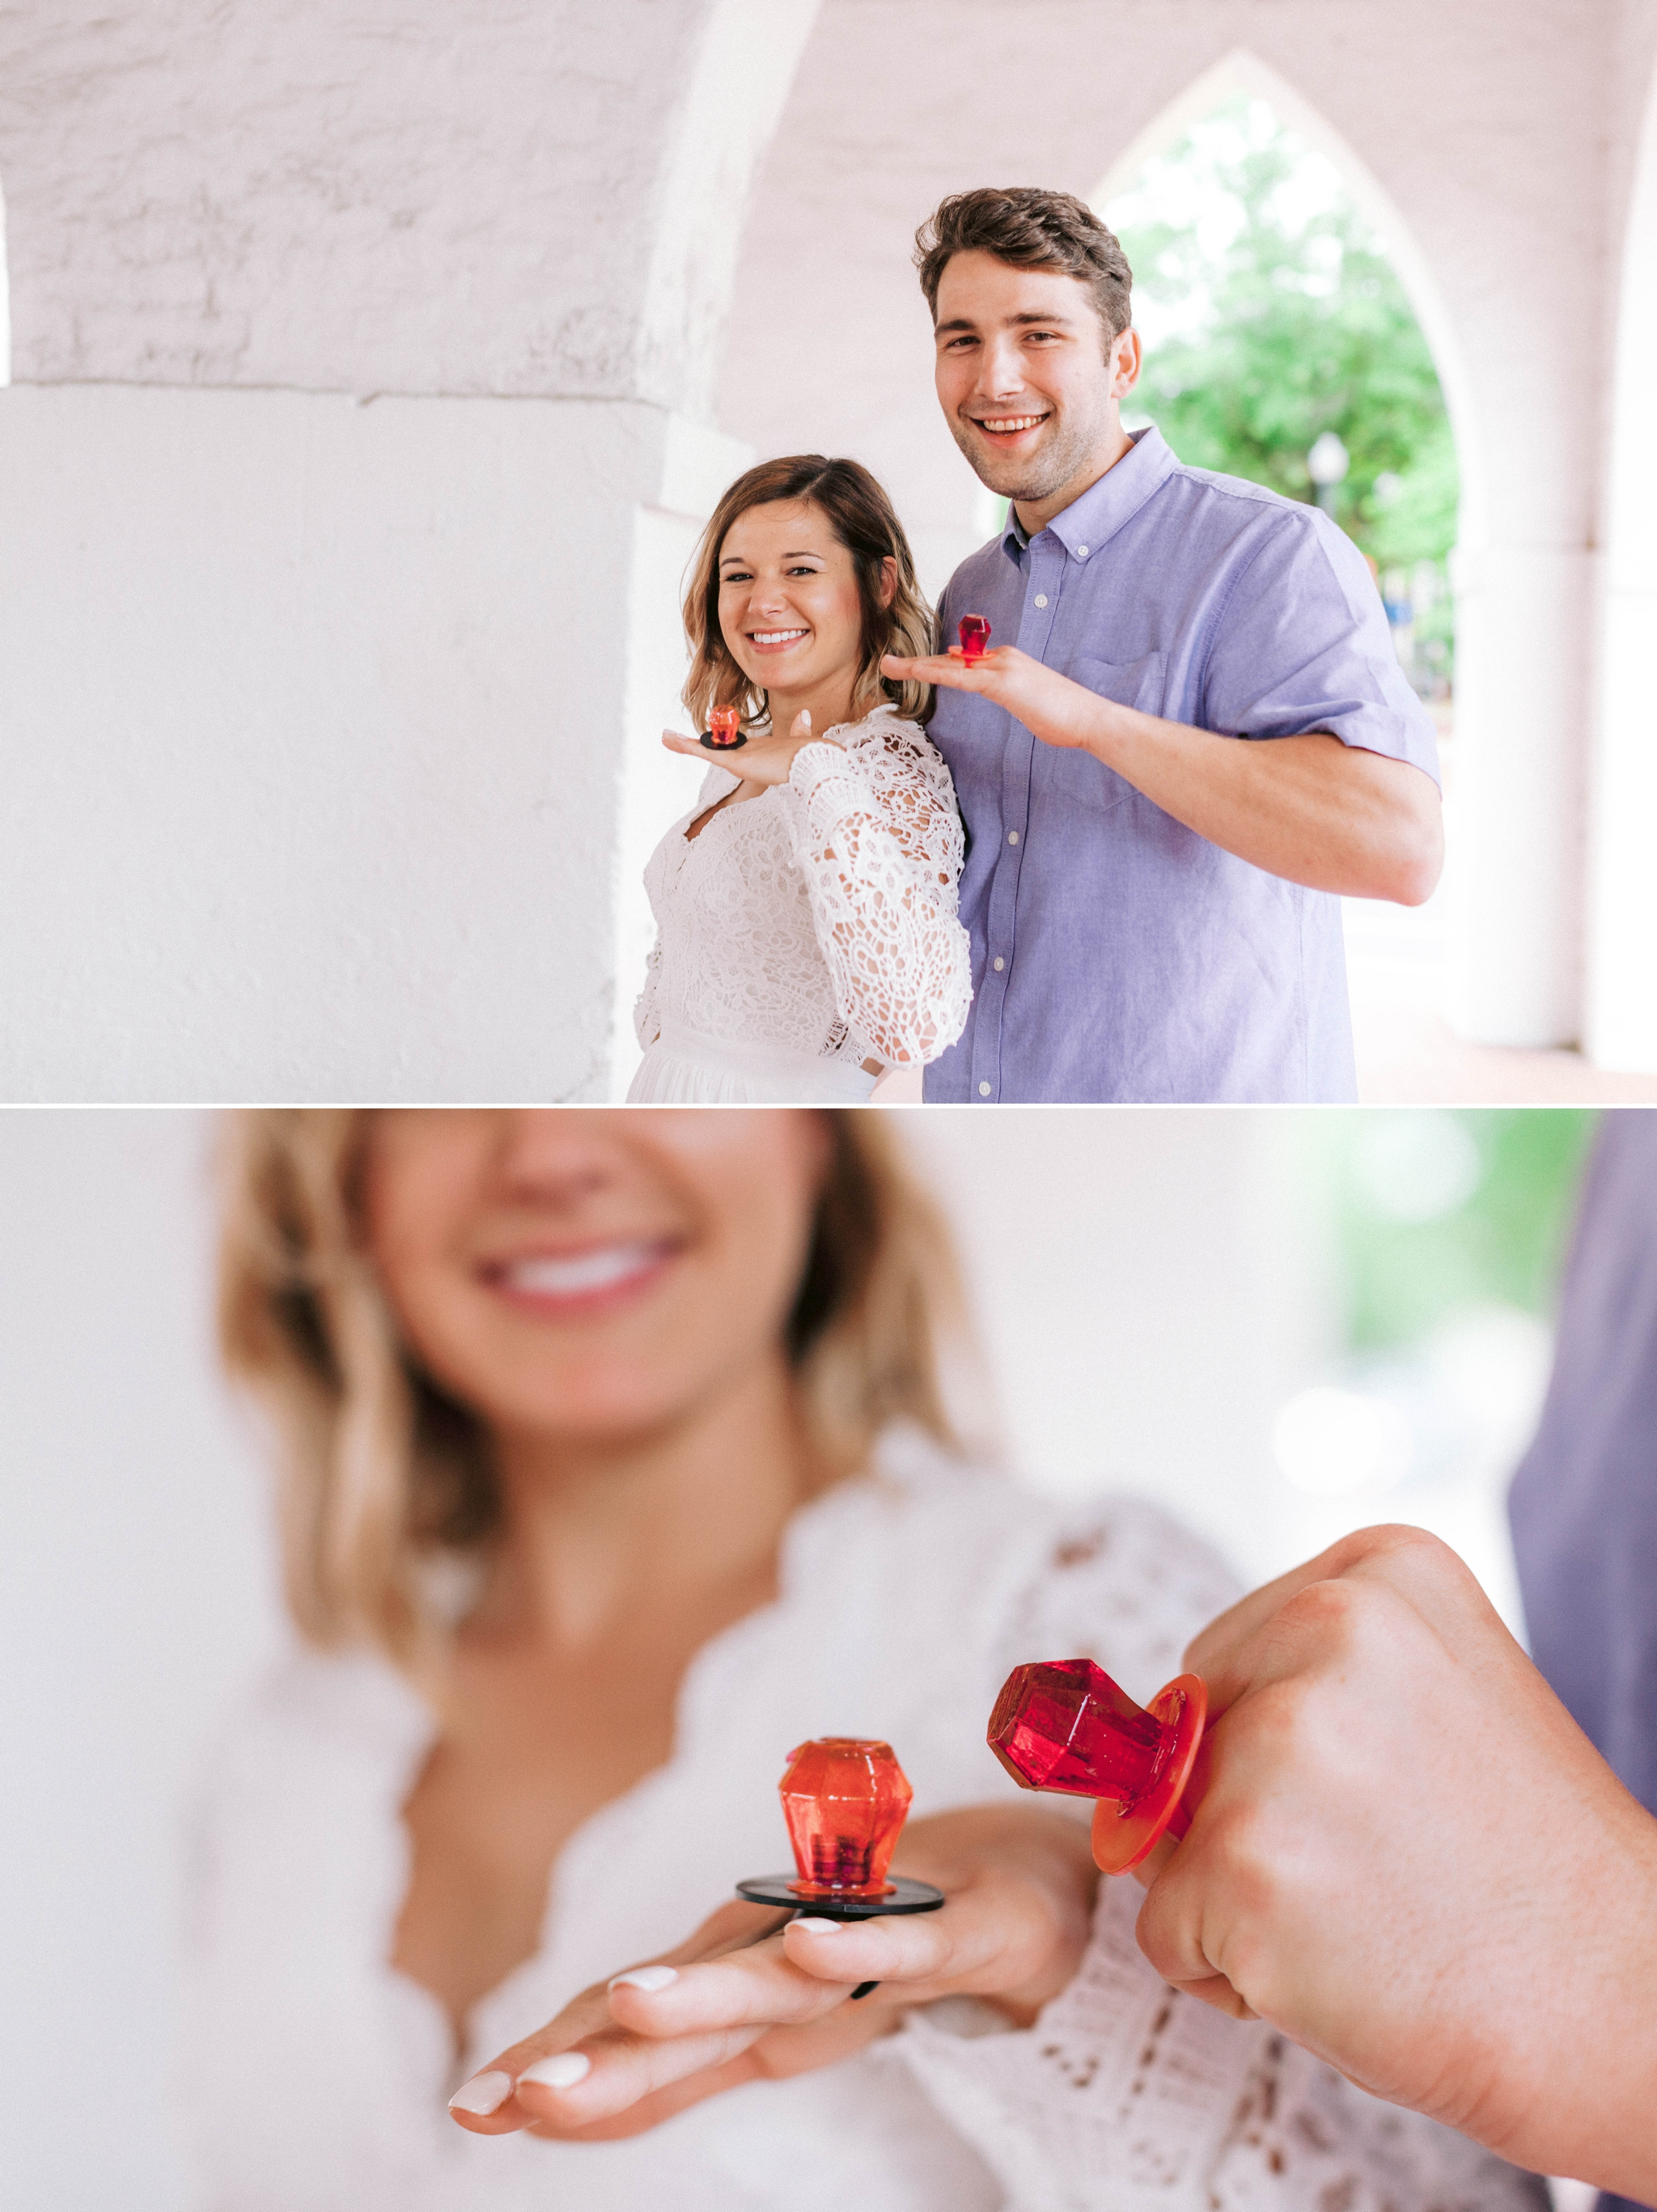 A fun urban elopement with ring pops - Oahu Hawaii Wedding Photographer 6.jpg